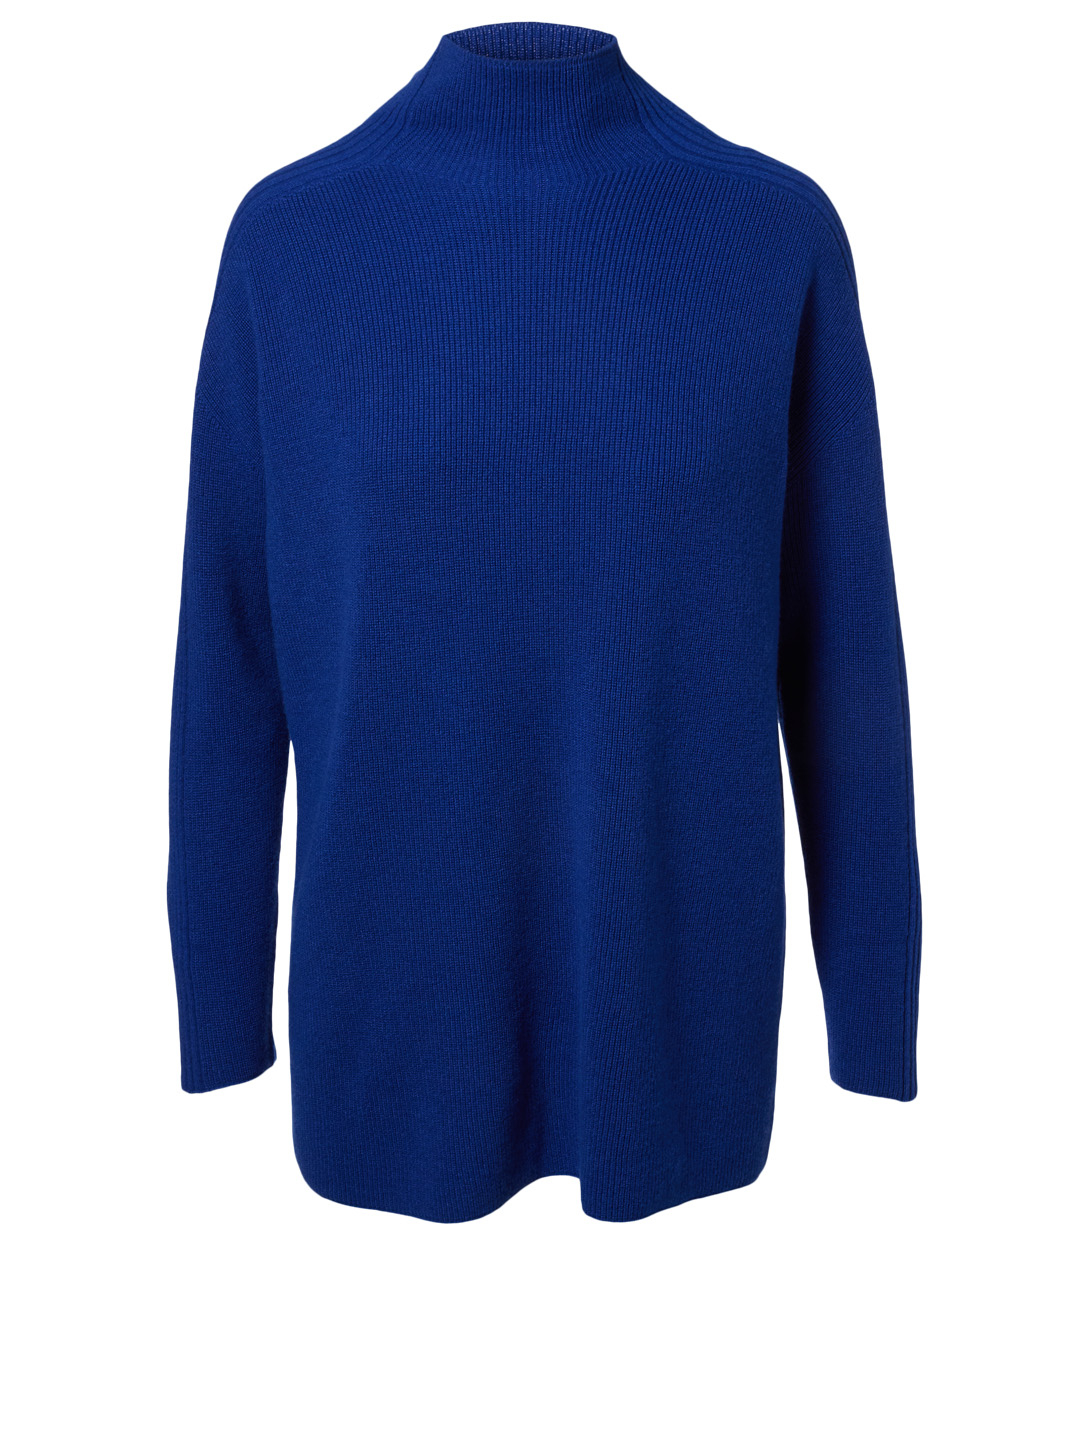 EILEEN FISHER KNT CASH FUNNEL NK Women's Blue